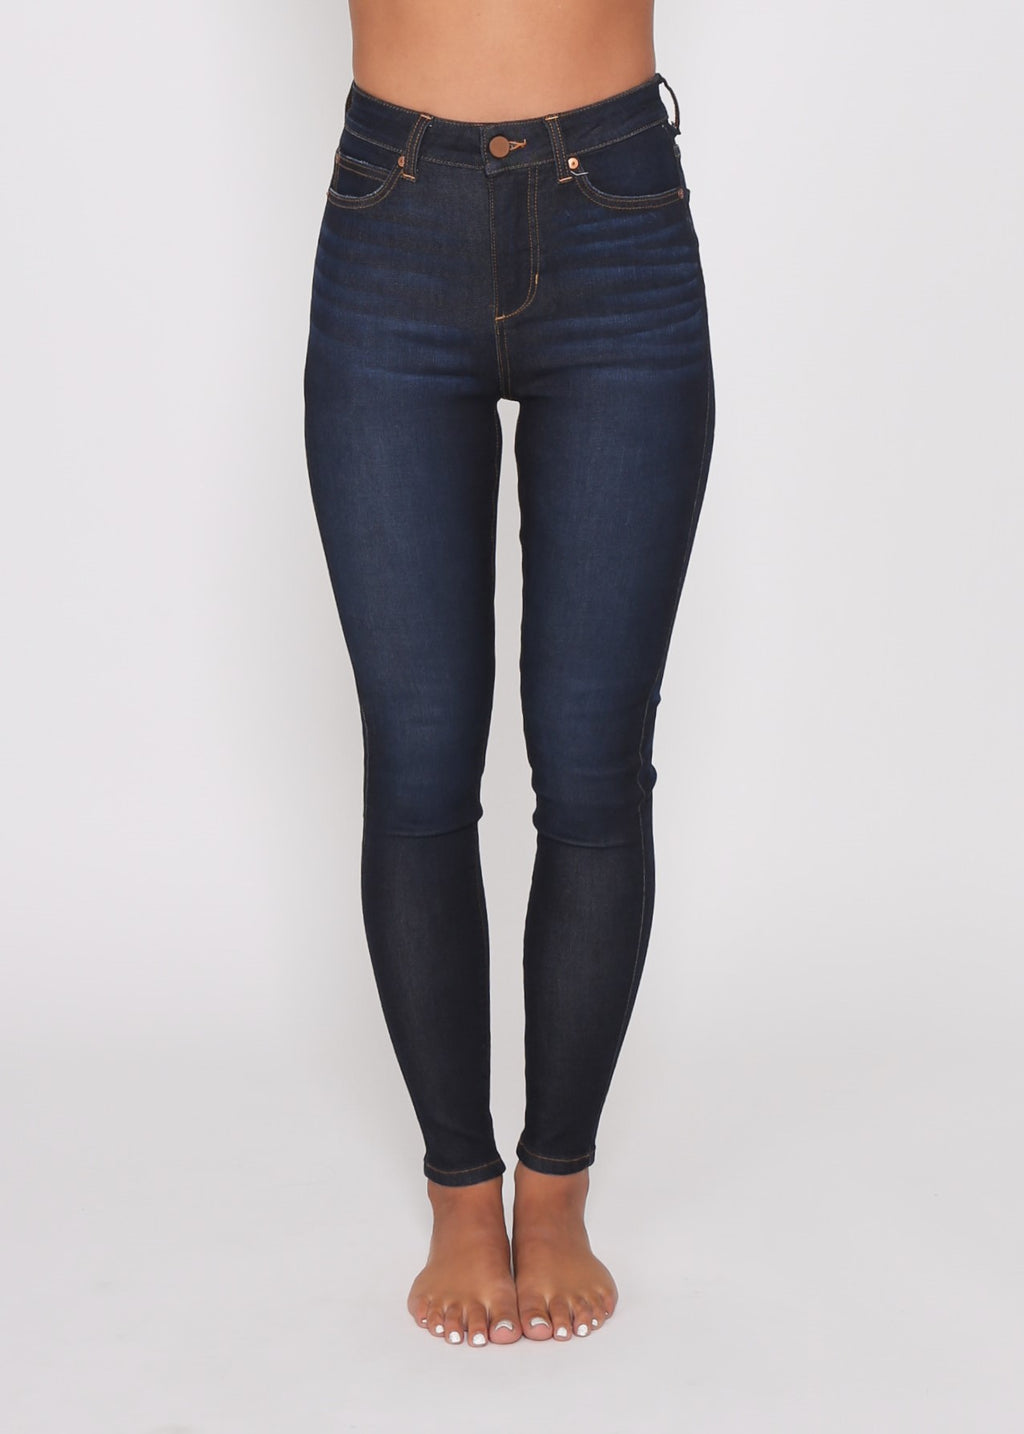 JUST IN - NATASHA SKINNY JEAN - DARK INK